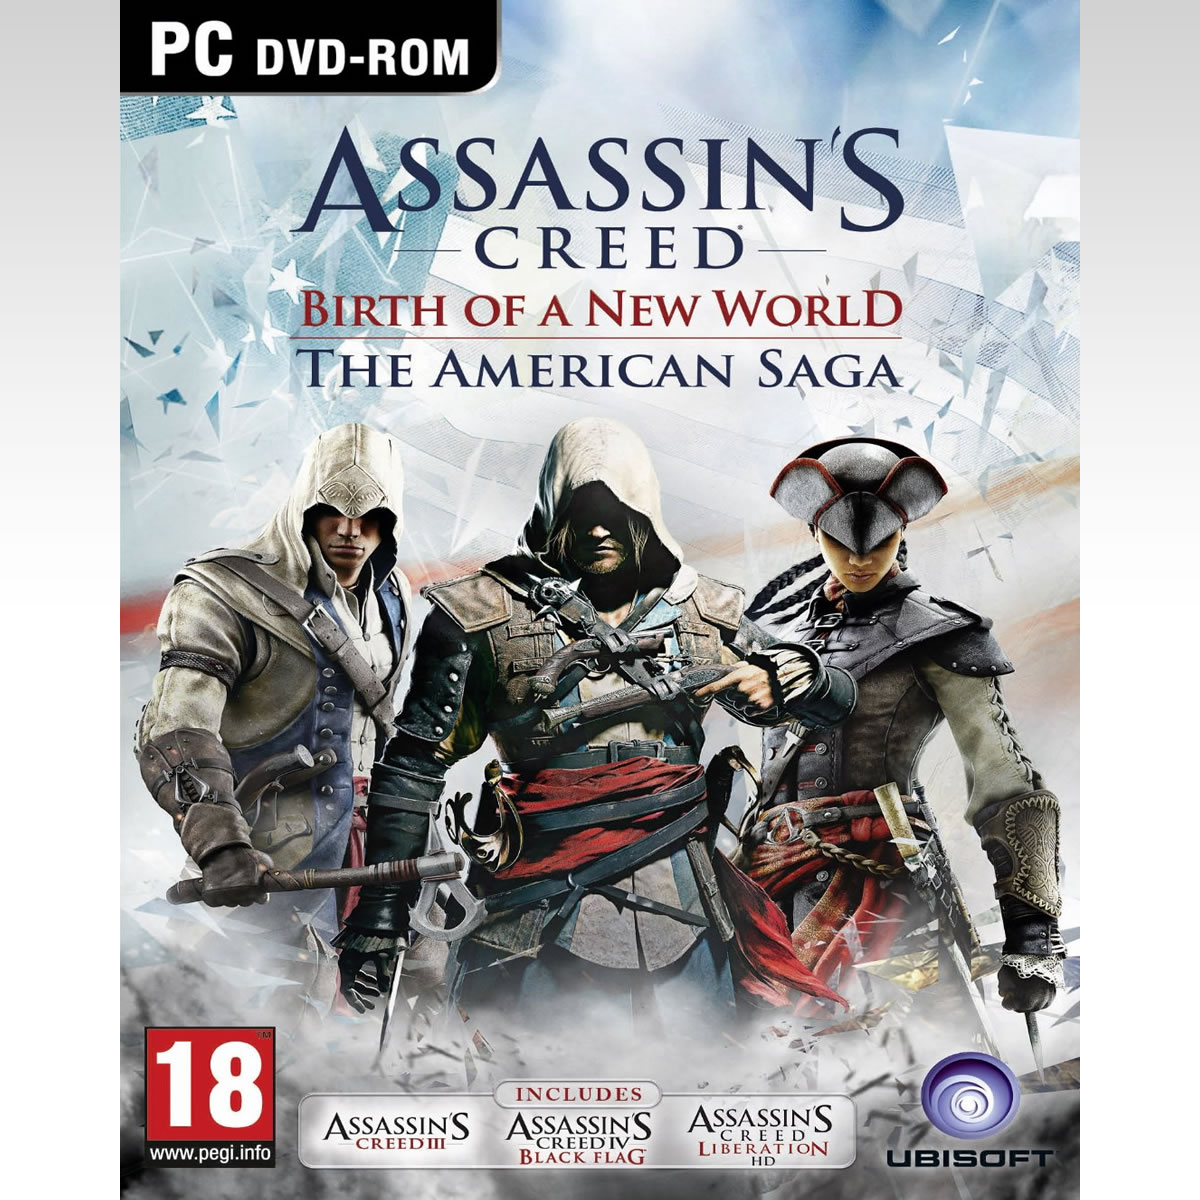 ASSASSINS CREED: BIRTH OF A NEW WORLD - THE AMERICAN SAGA COMPILATION (PC)